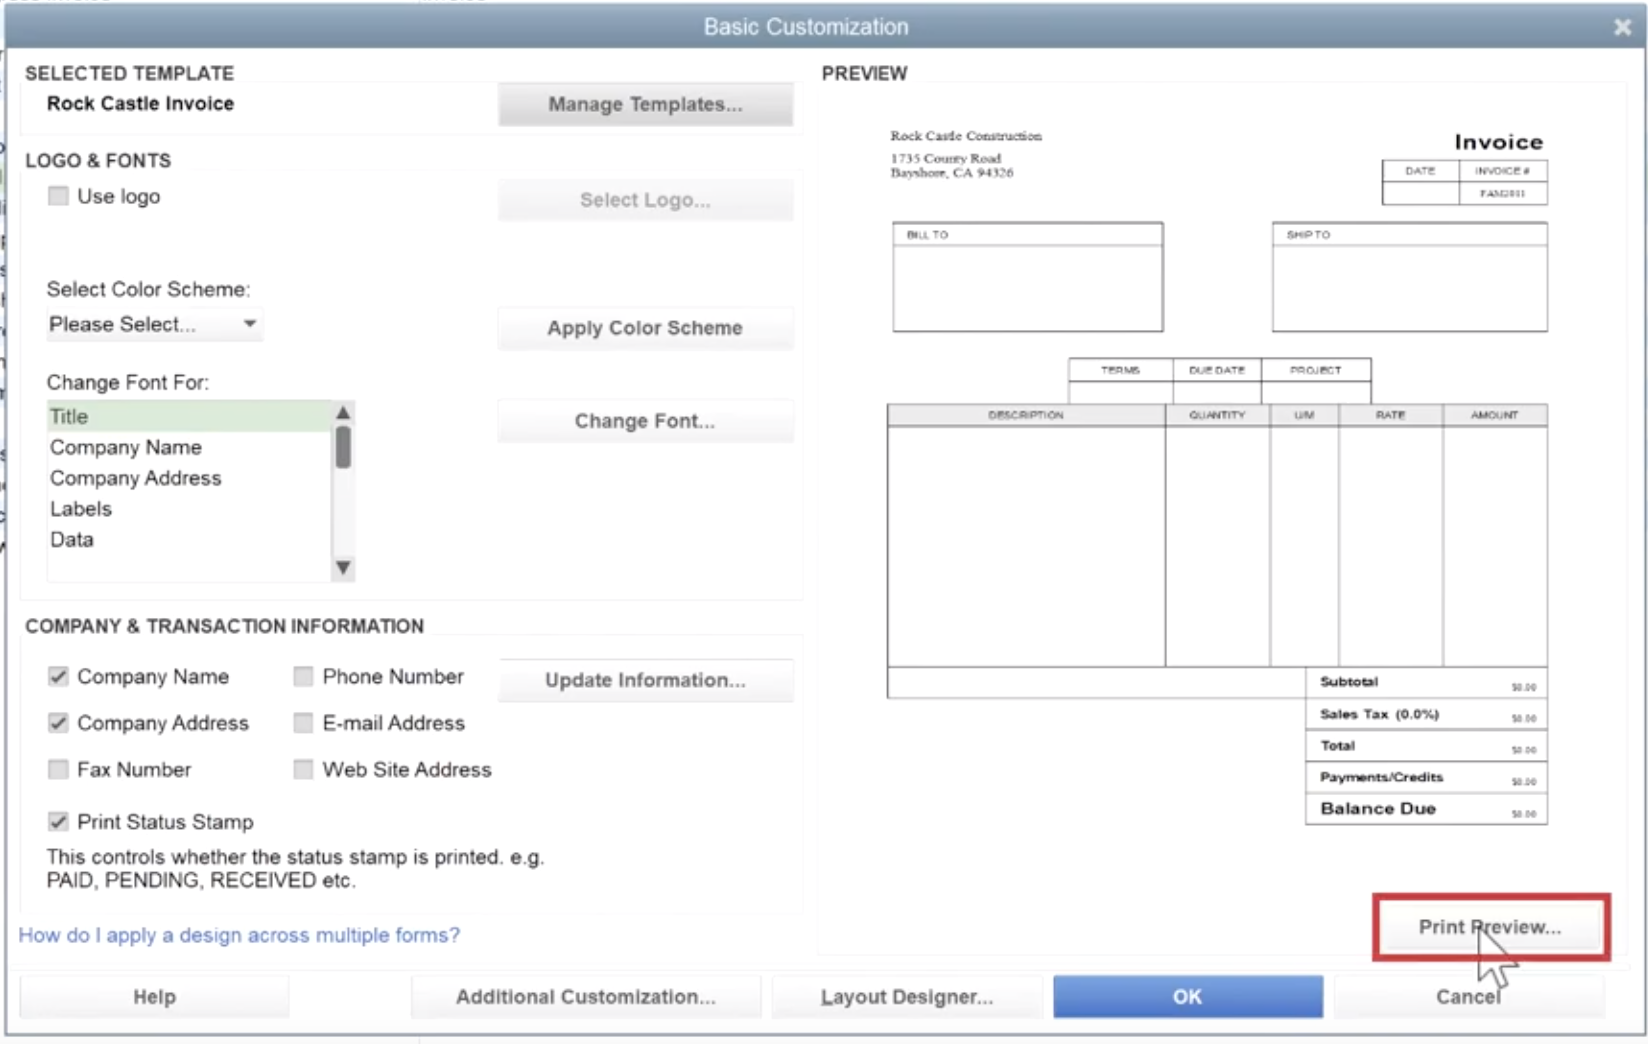 How To Edit An Invoice Template In Quickbooks Gentle Frog Bookkeeping And Custom Training